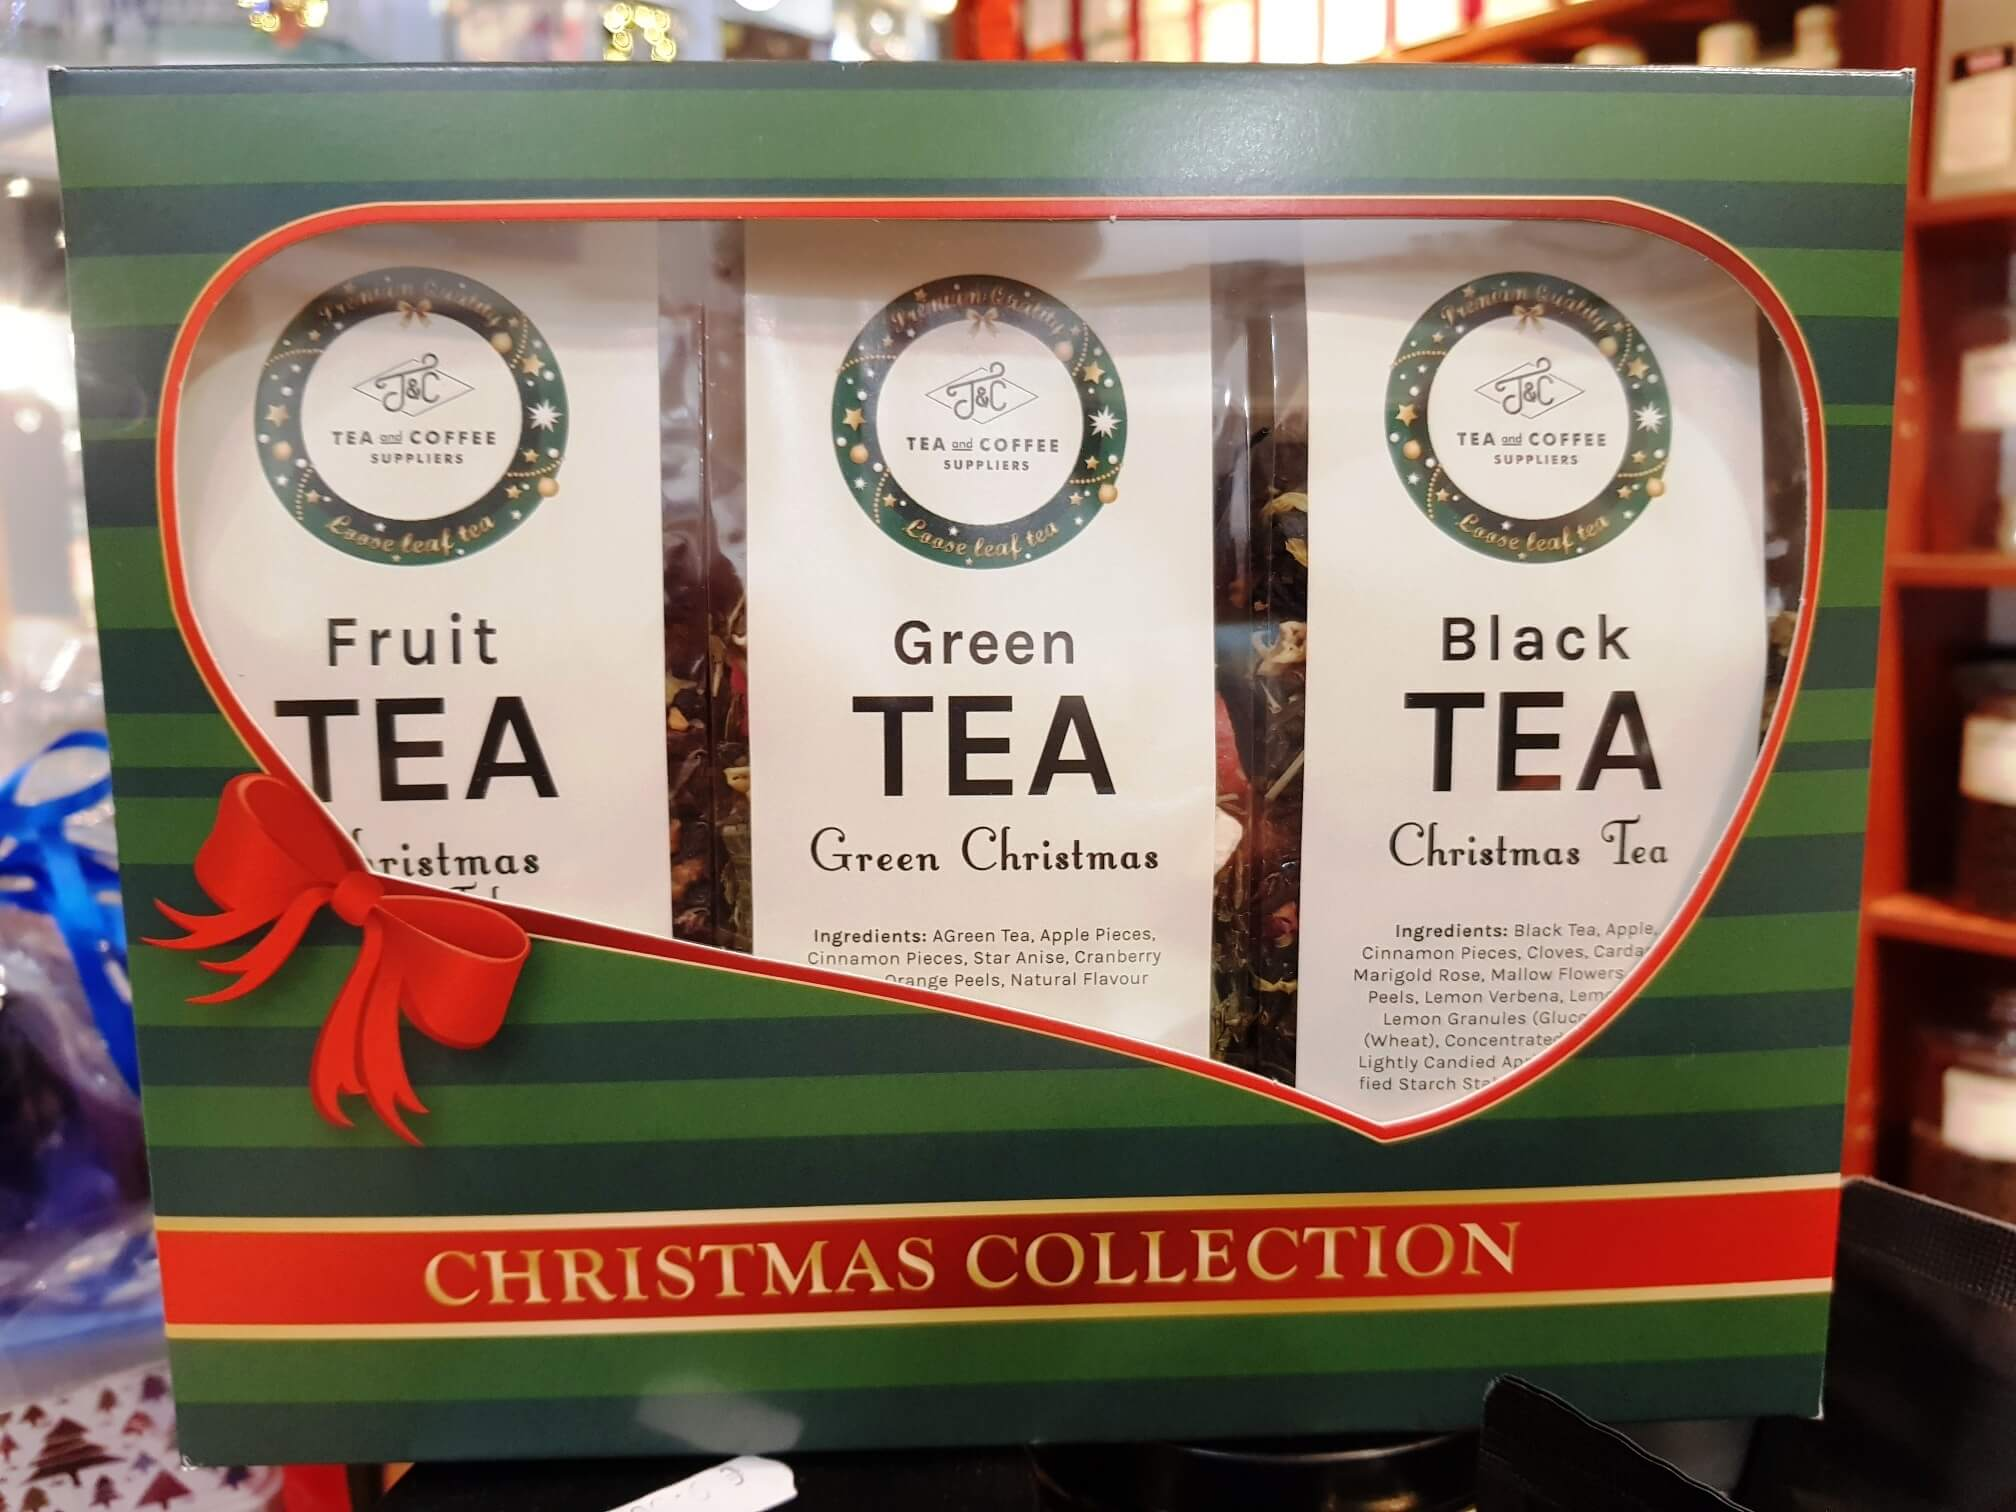 T&C CHRISTMAS TEA COLLECTION SET 3x100g